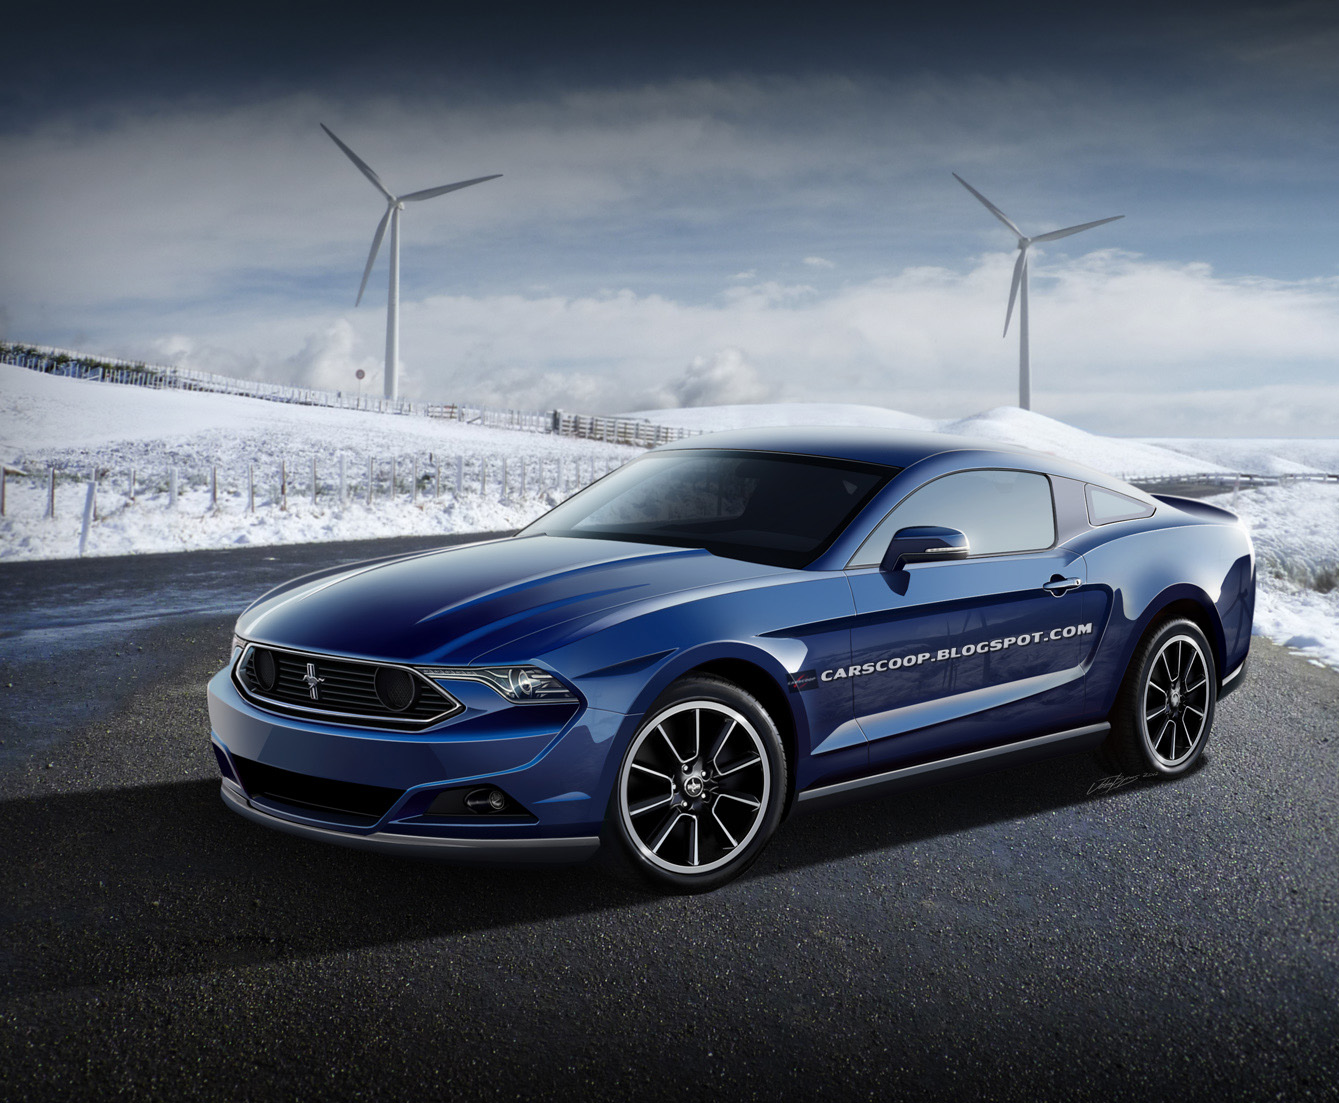 hot or not 2015 ford mustang redesign concept. Black Bedroom Furniture Sets. Home Design Ideas